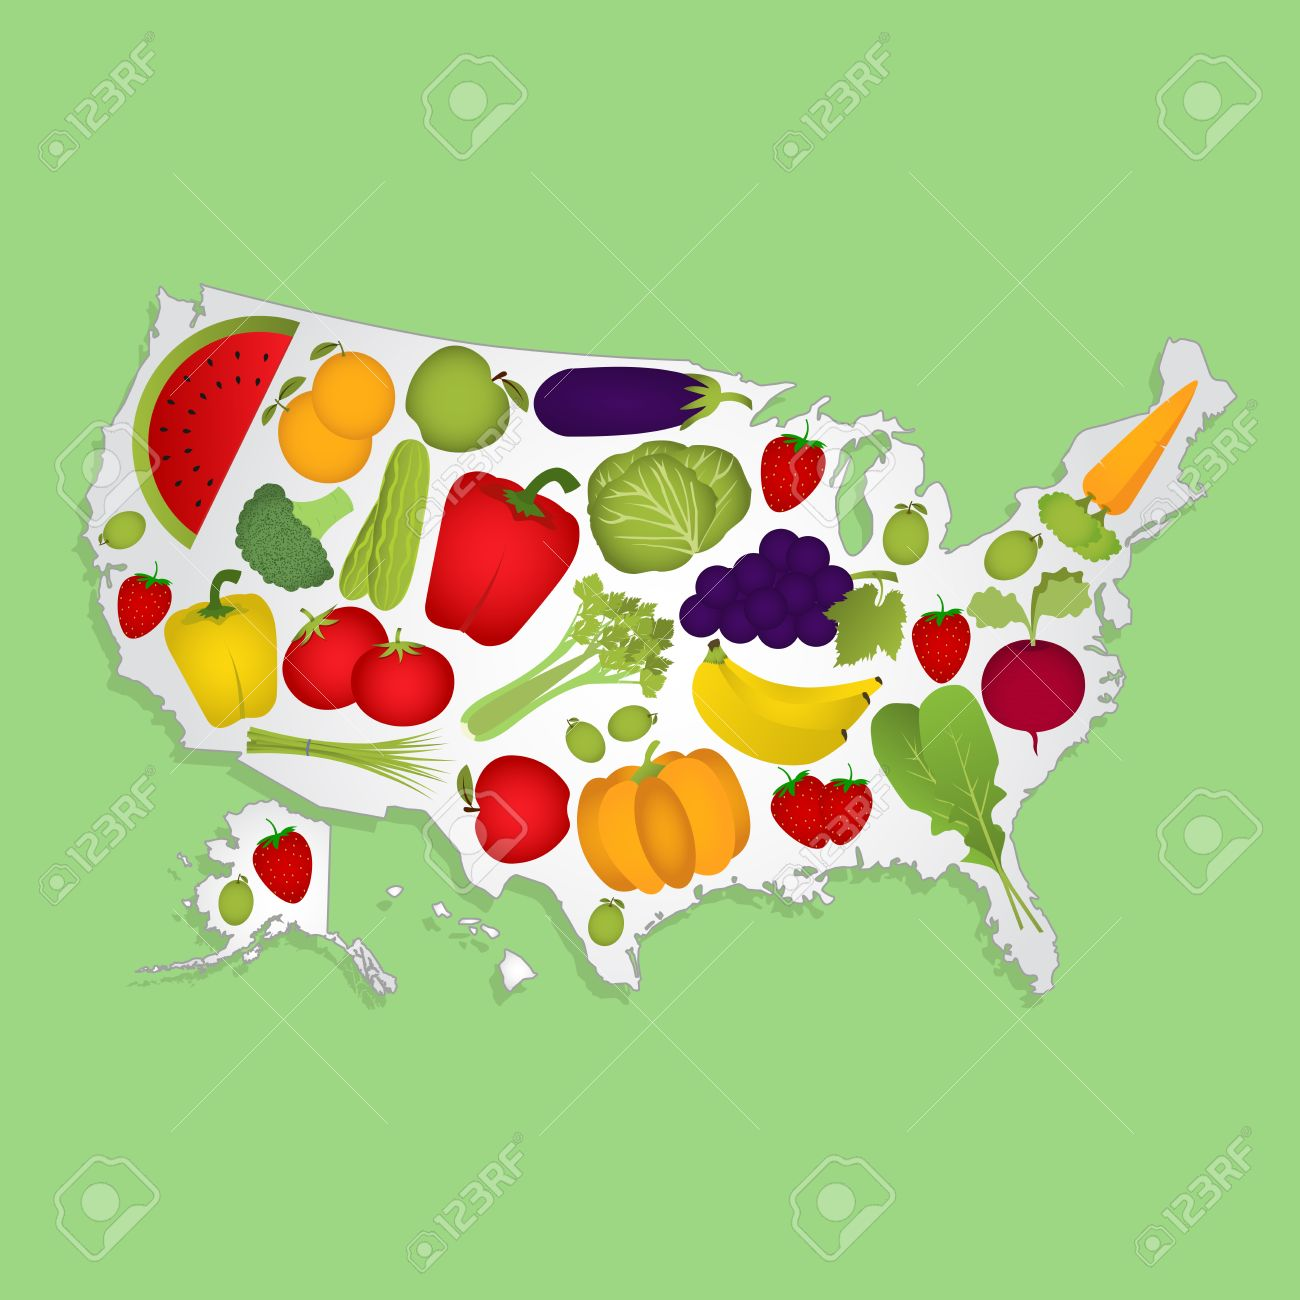 Map Of USA With Fruits Map Of United States Full Of Fruits And - Full usa maps